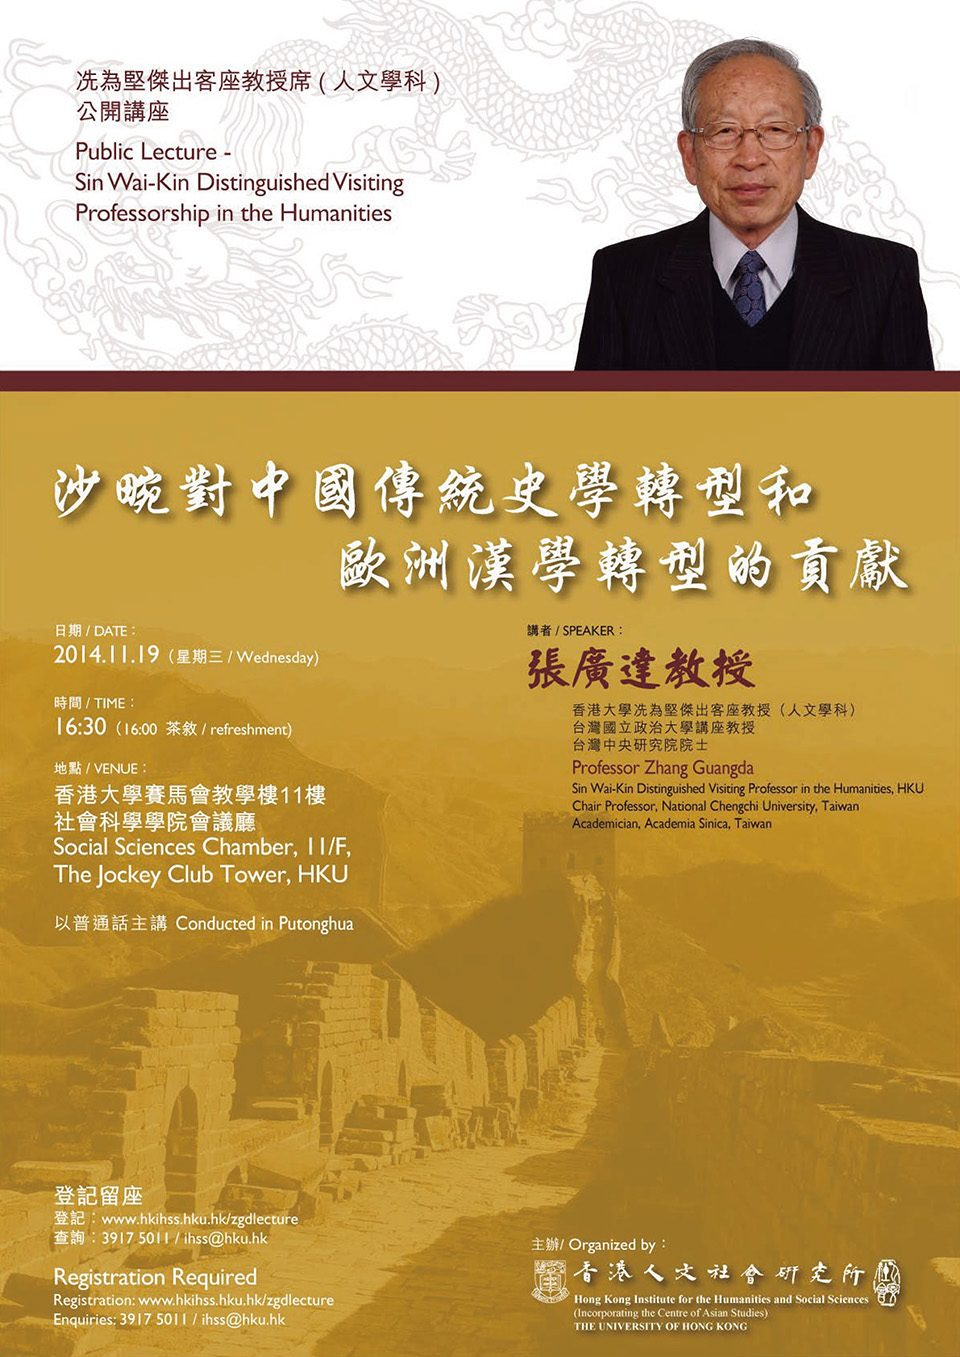 "Public Lecture on ""Contributions of Émmanuel-Édouard Chavannes towards Chinese Traditional Historiography and the Transformation of European Sinology"" (沙畹對中國傳統史學轉型和歐洲漢學轉型的貢獻) by Professor Guangda Zhang (November 19, 2014)"